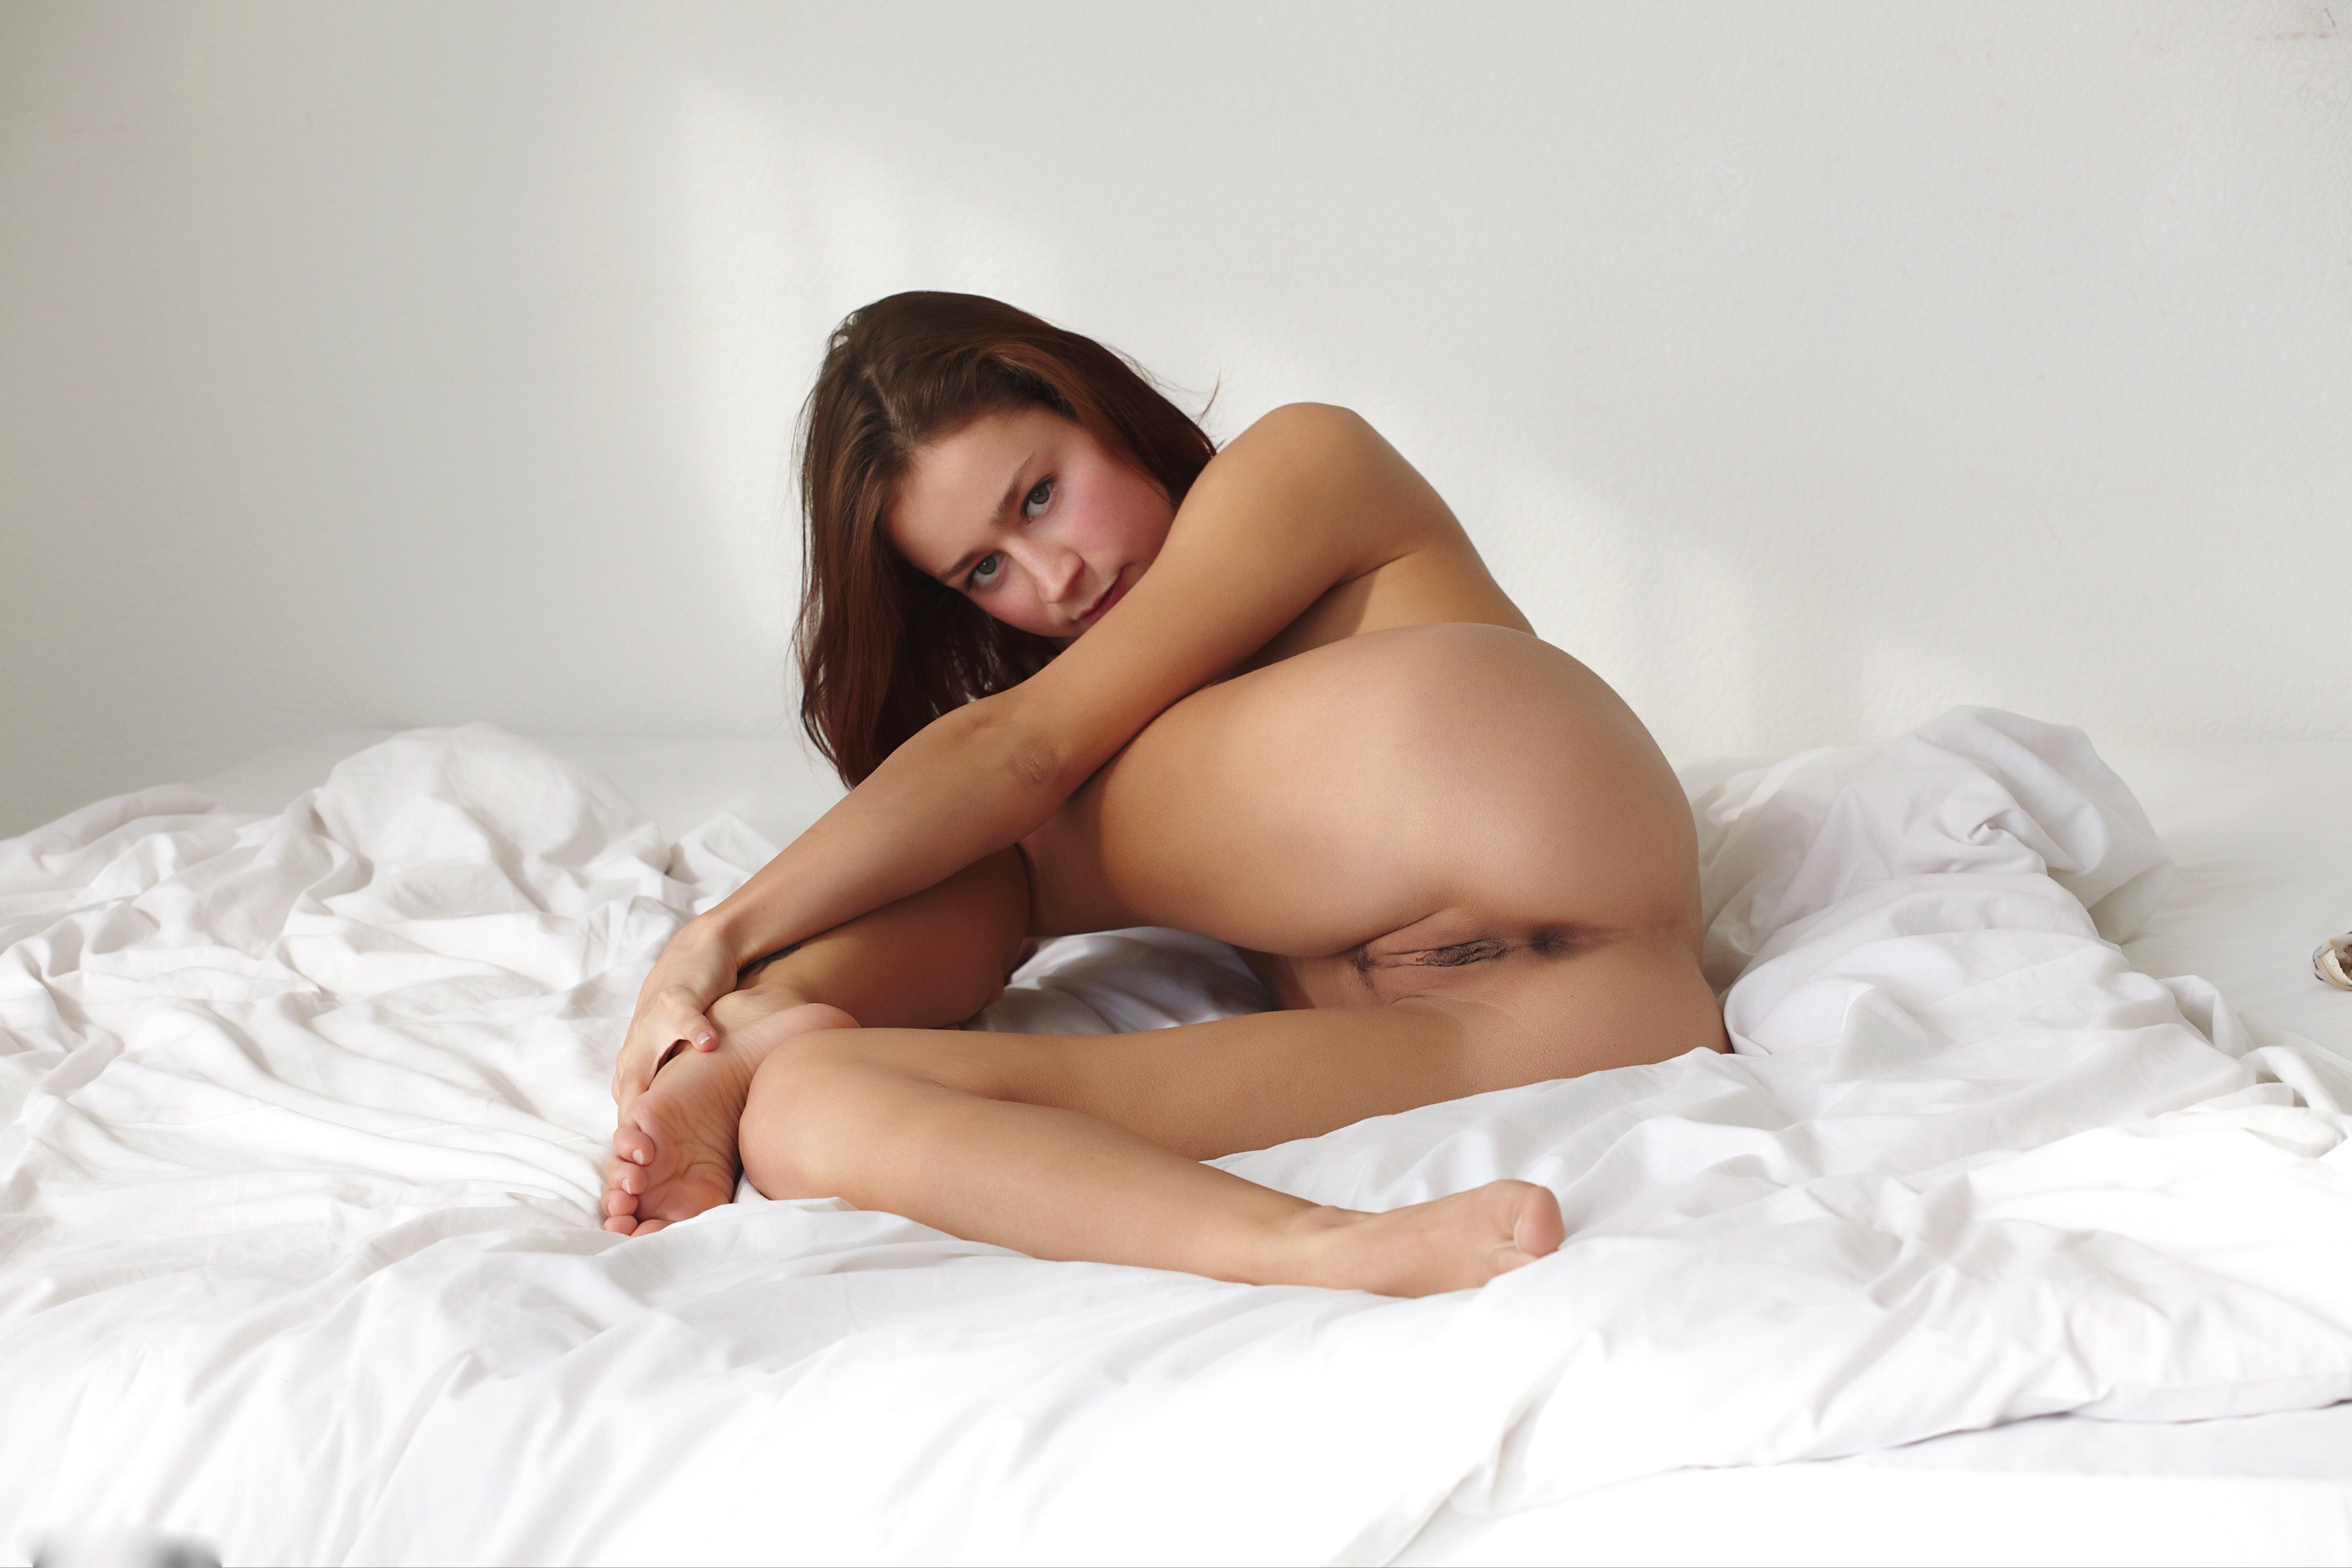 the sexiest nude women alive and fucked